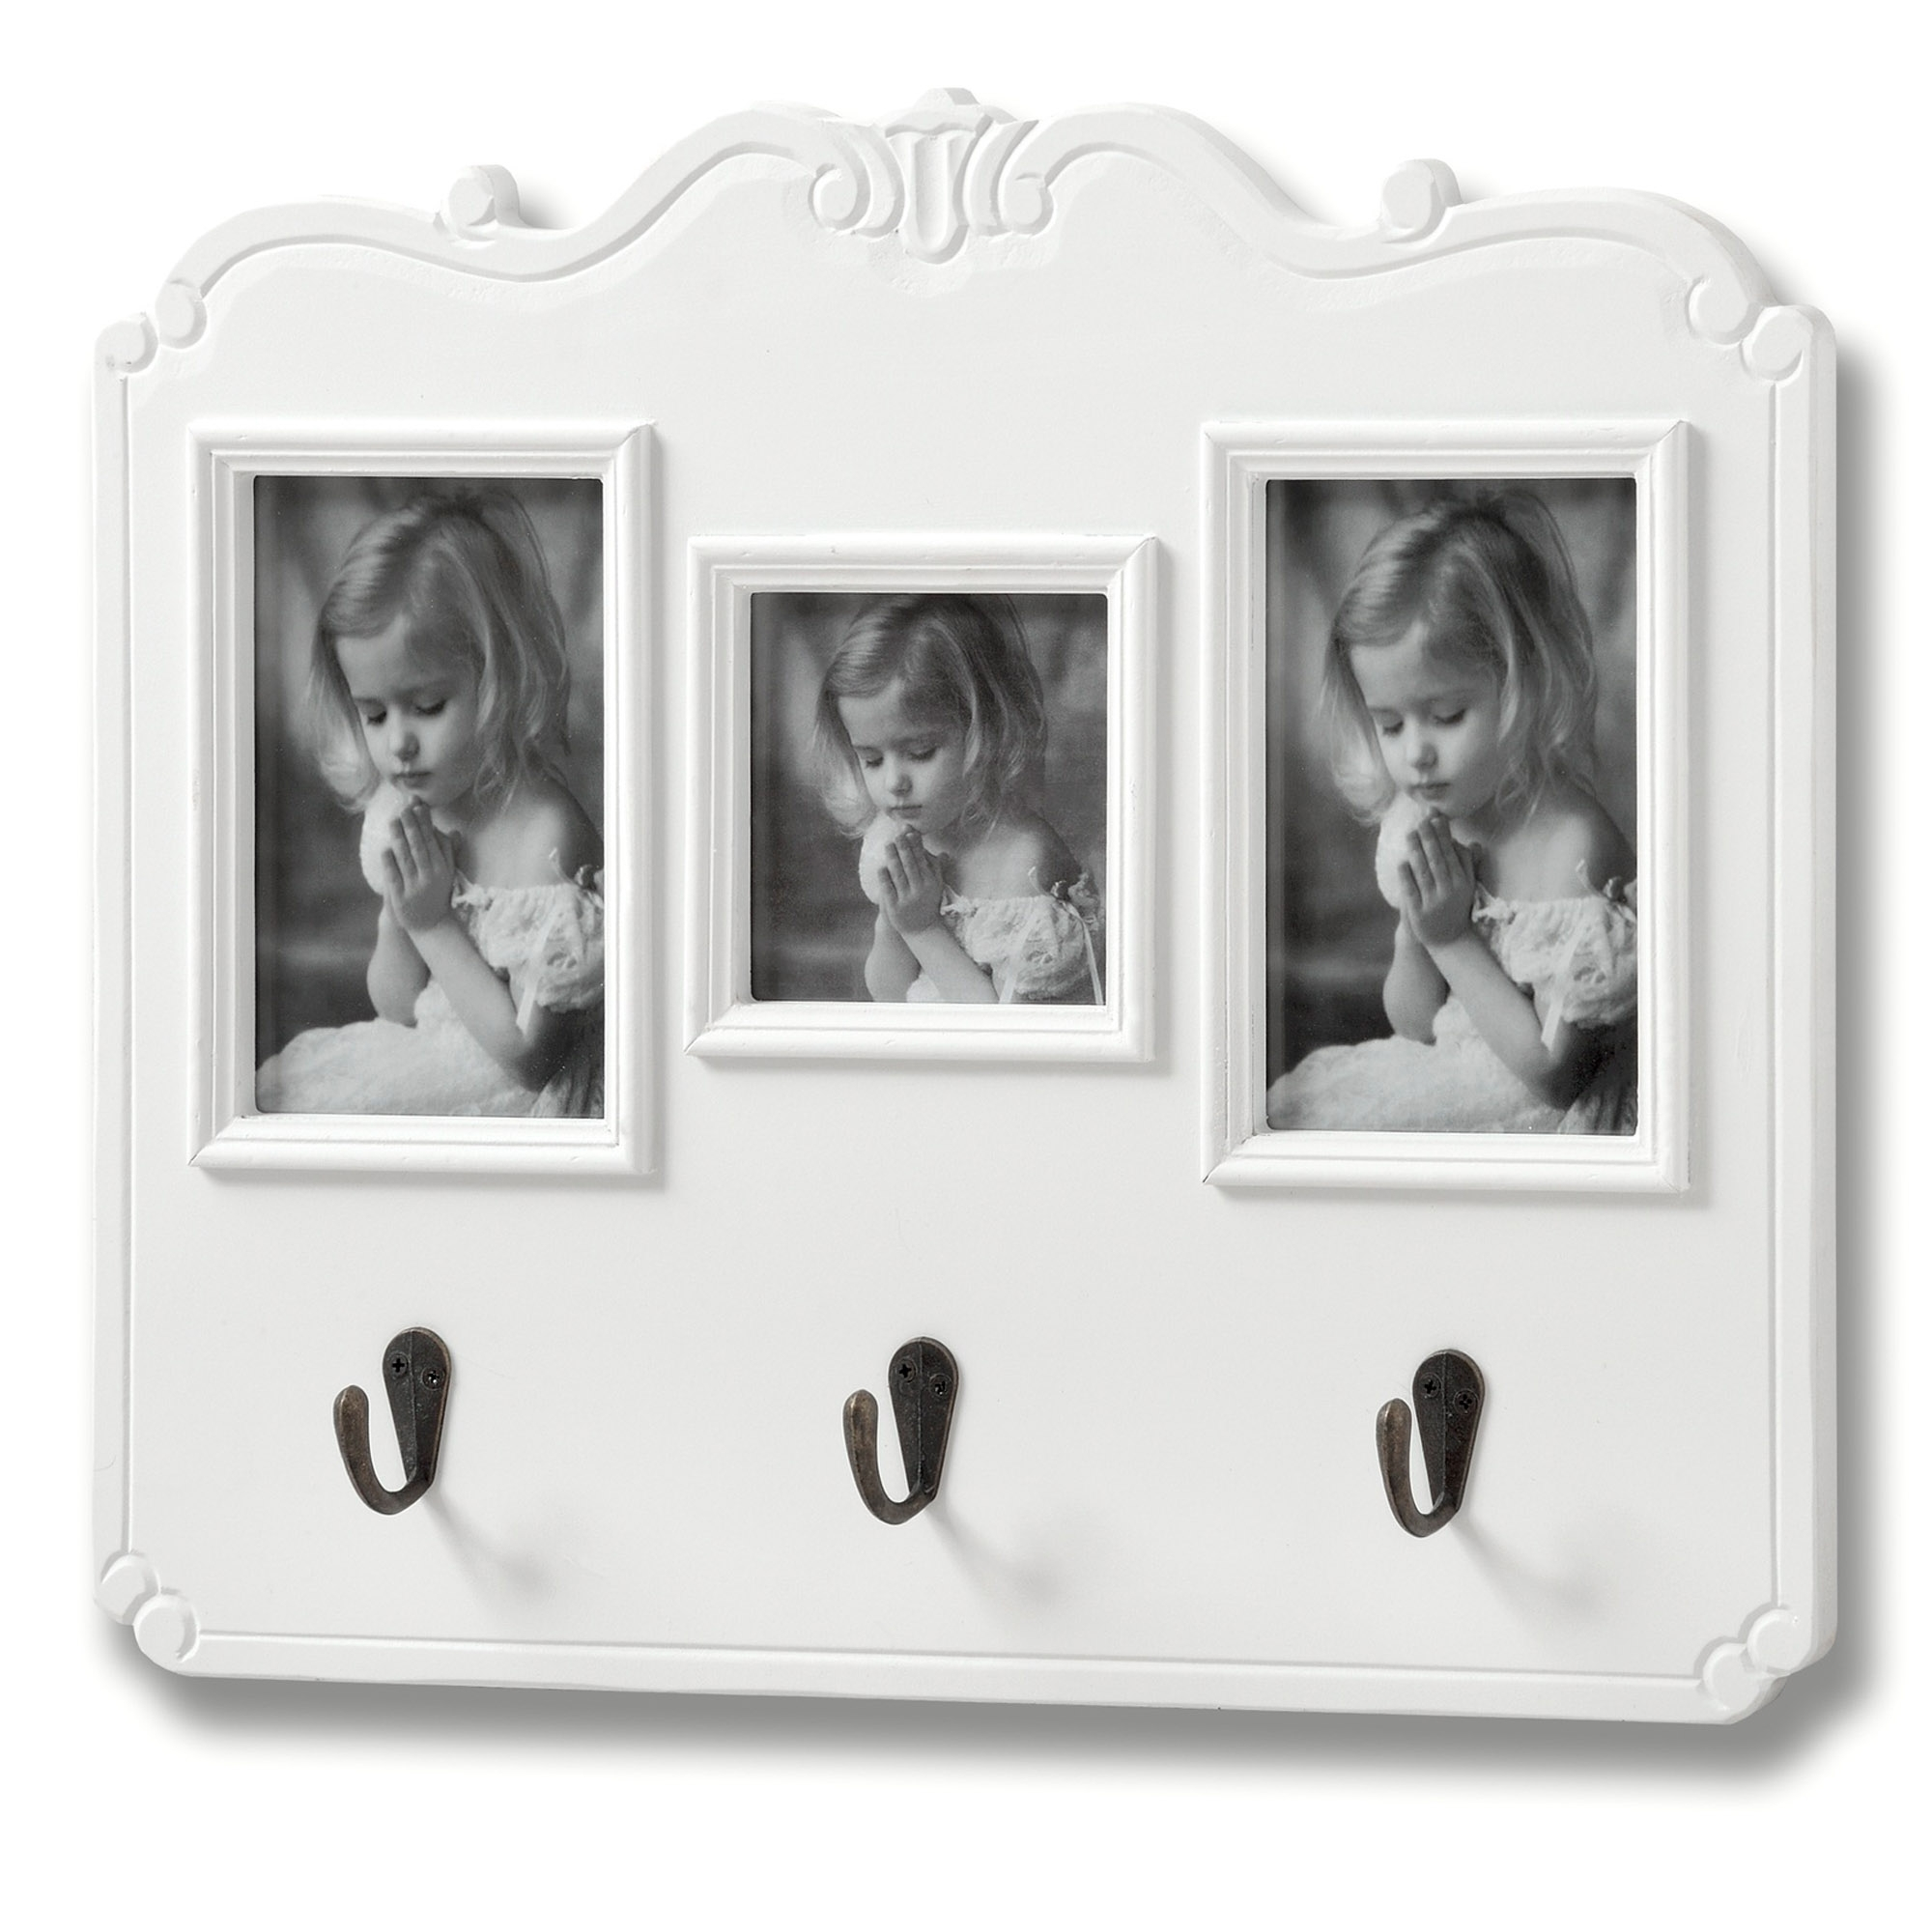 Fleur White 3 Picture Shabby Chic Photo Frame w/Hooks | HomesDirect365